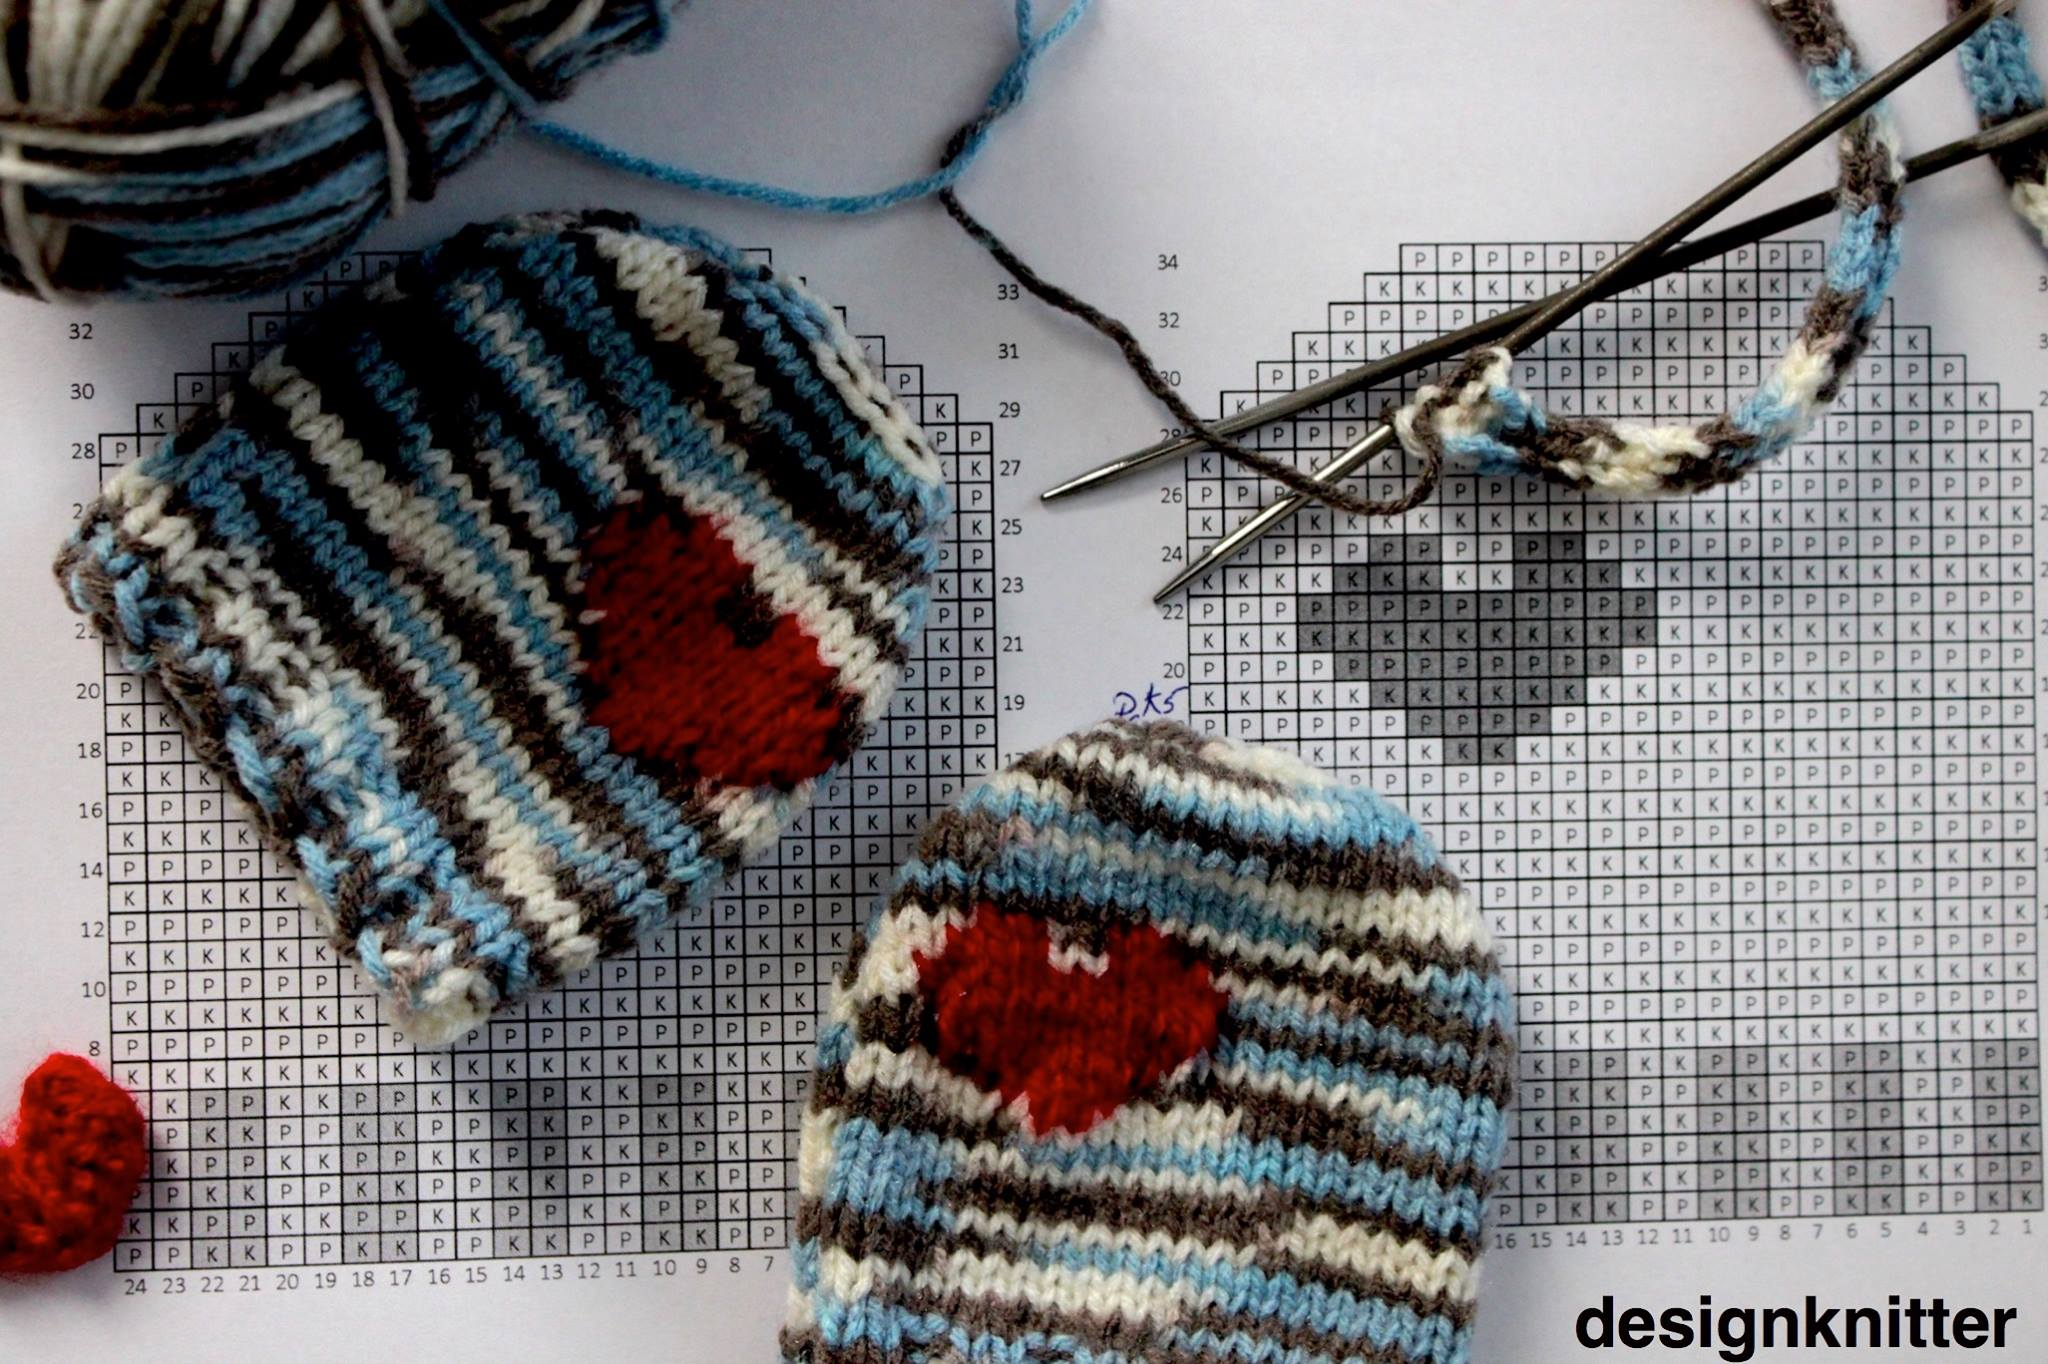 Project | Designknitter